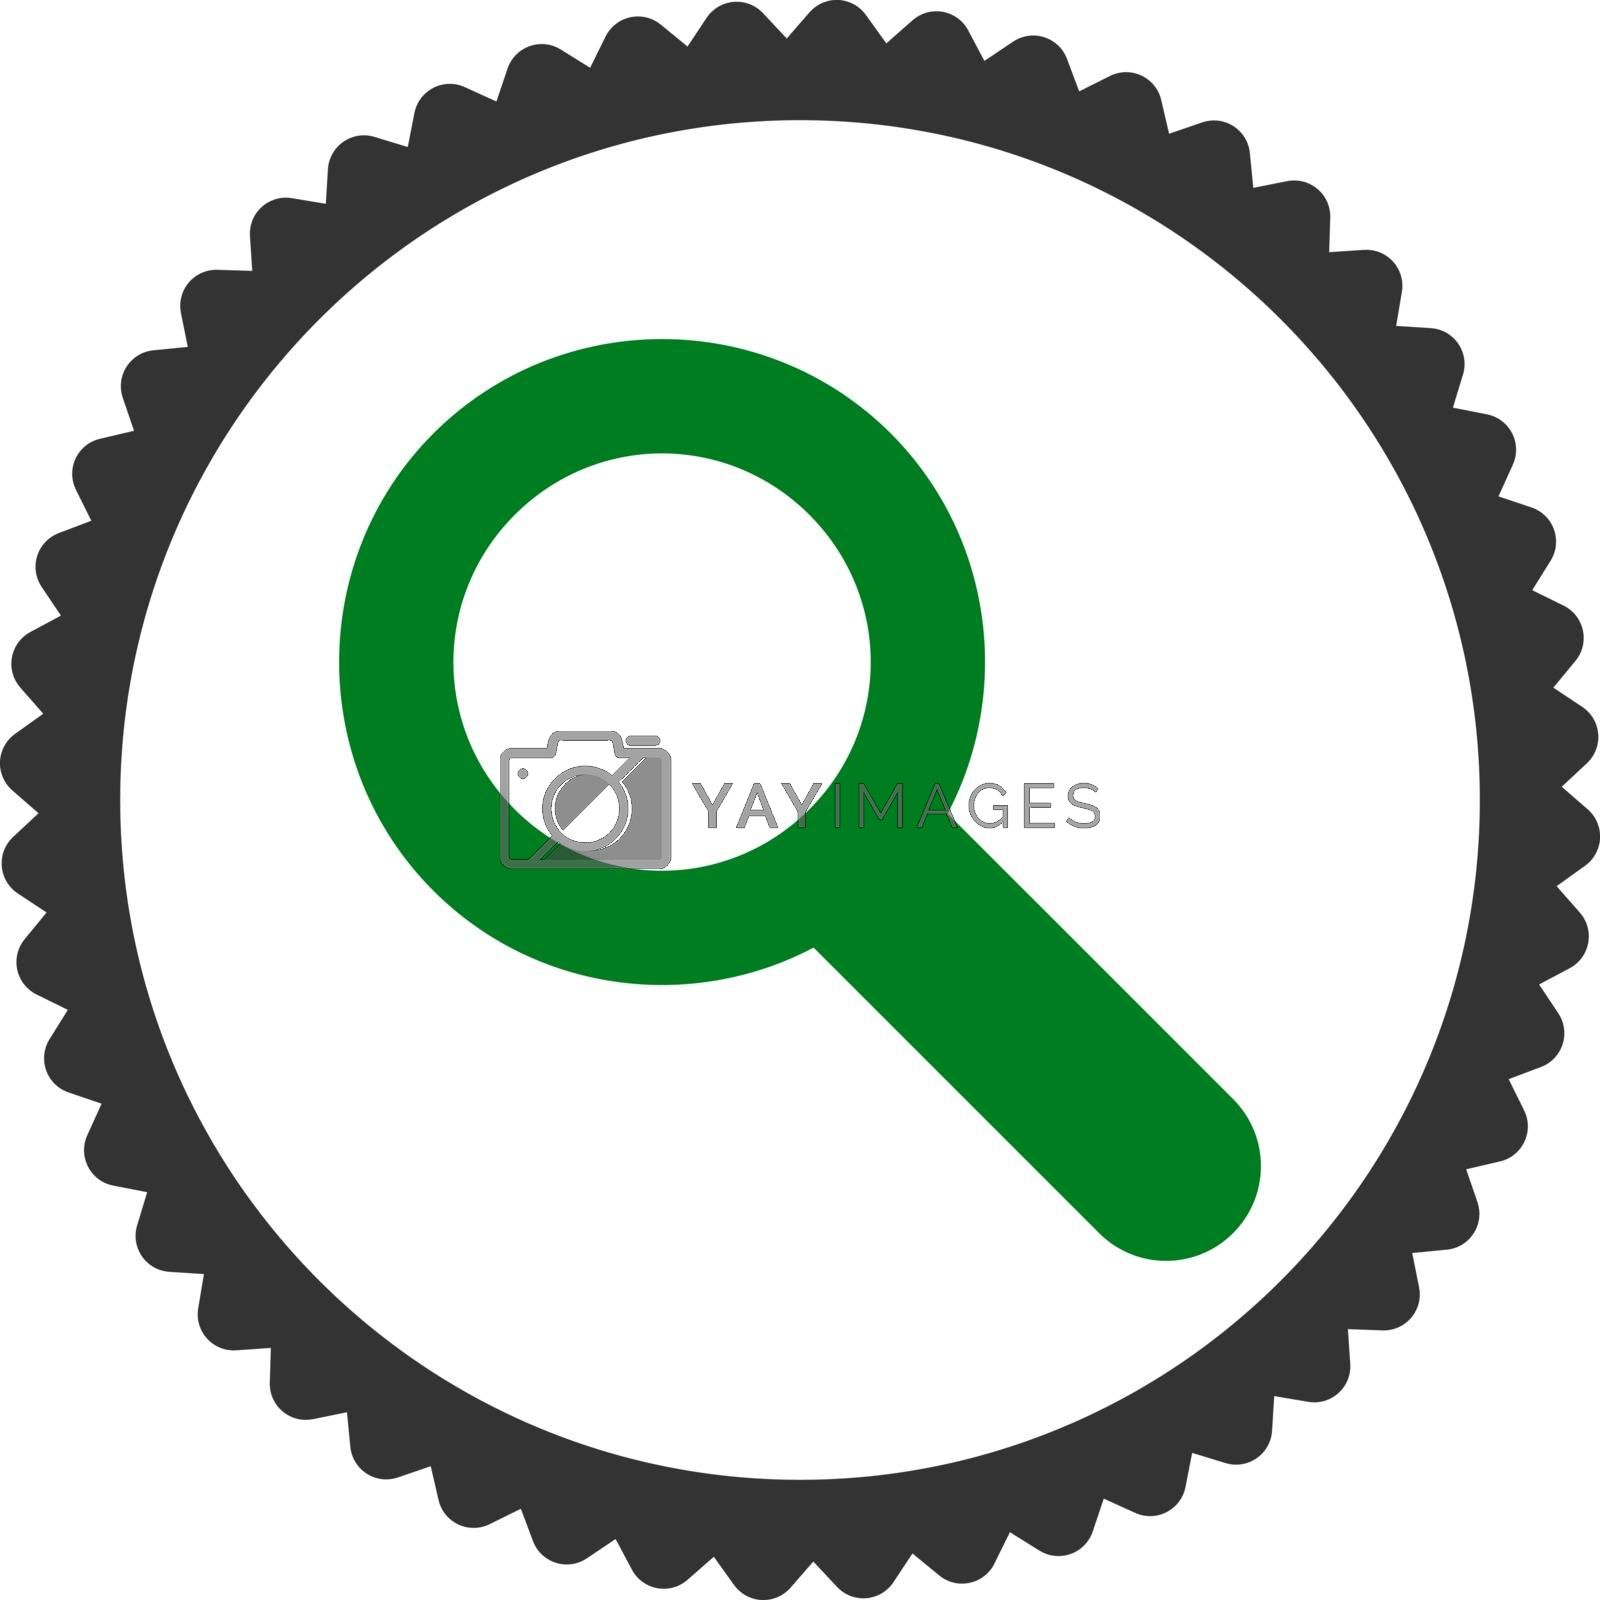 Search flat green and gray colors round stamp icon by Aha-Soft